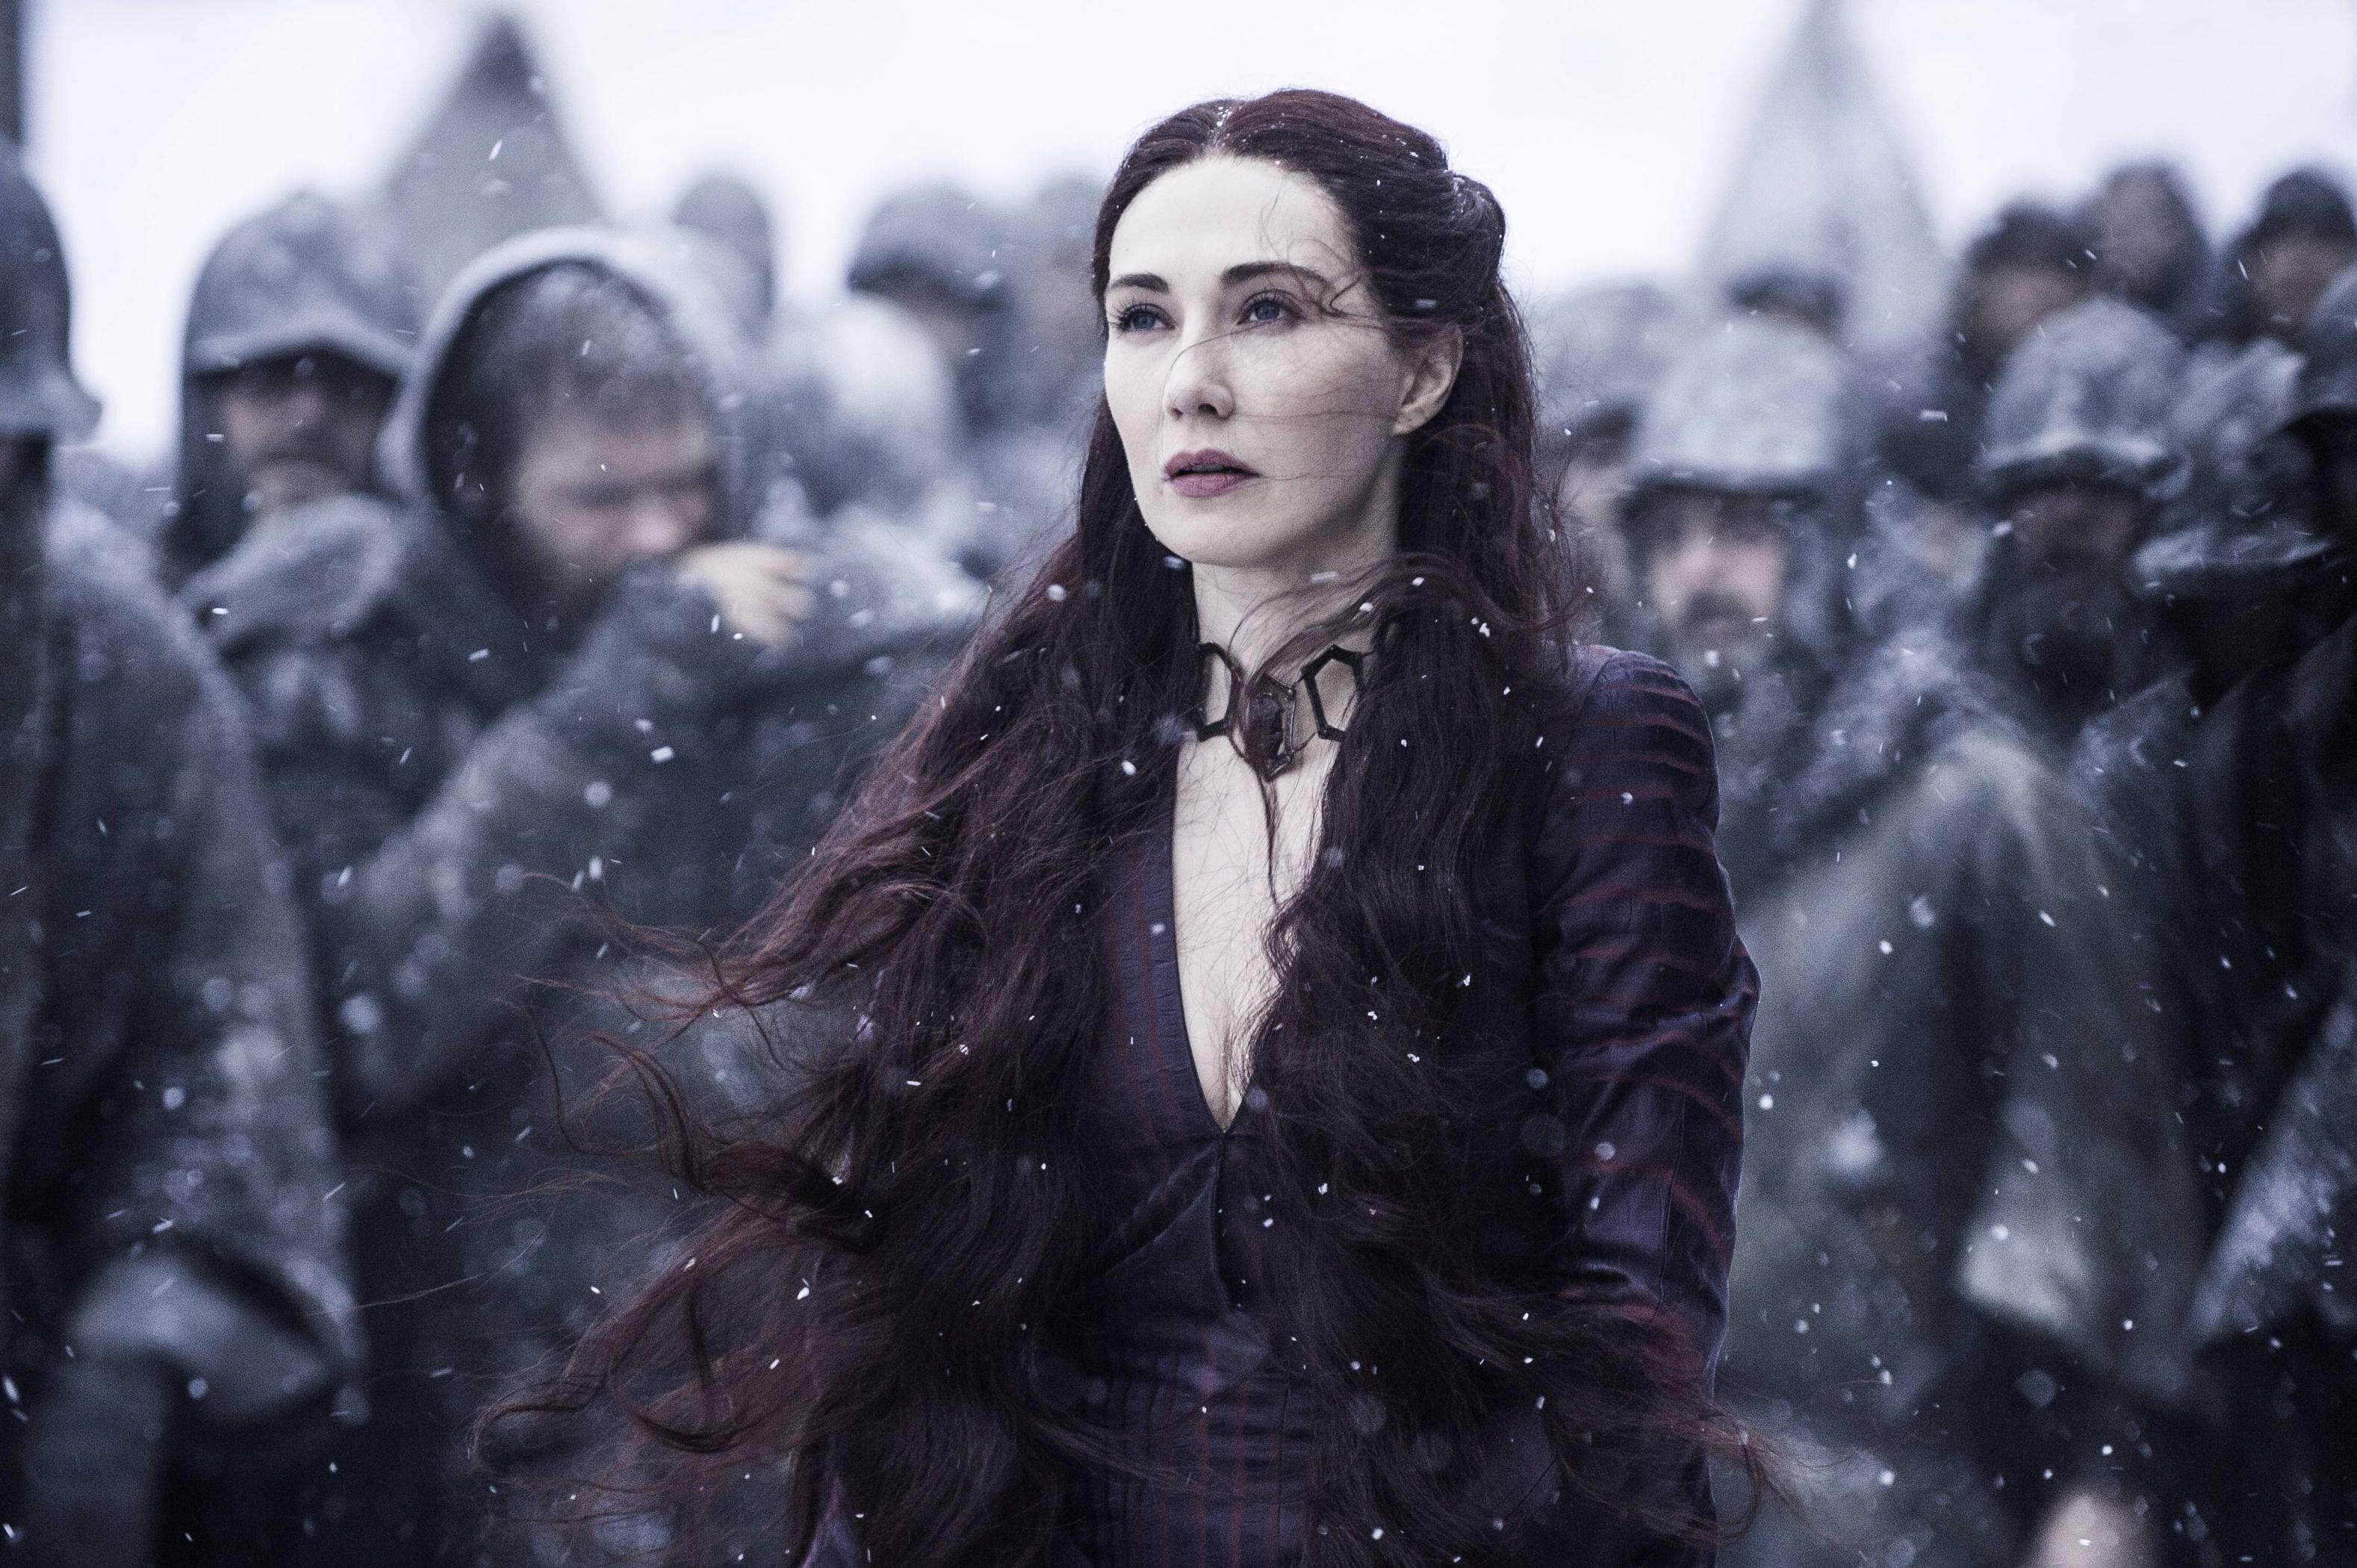 Carice Van Houten (Melisandre) could have played Cersei Lannister